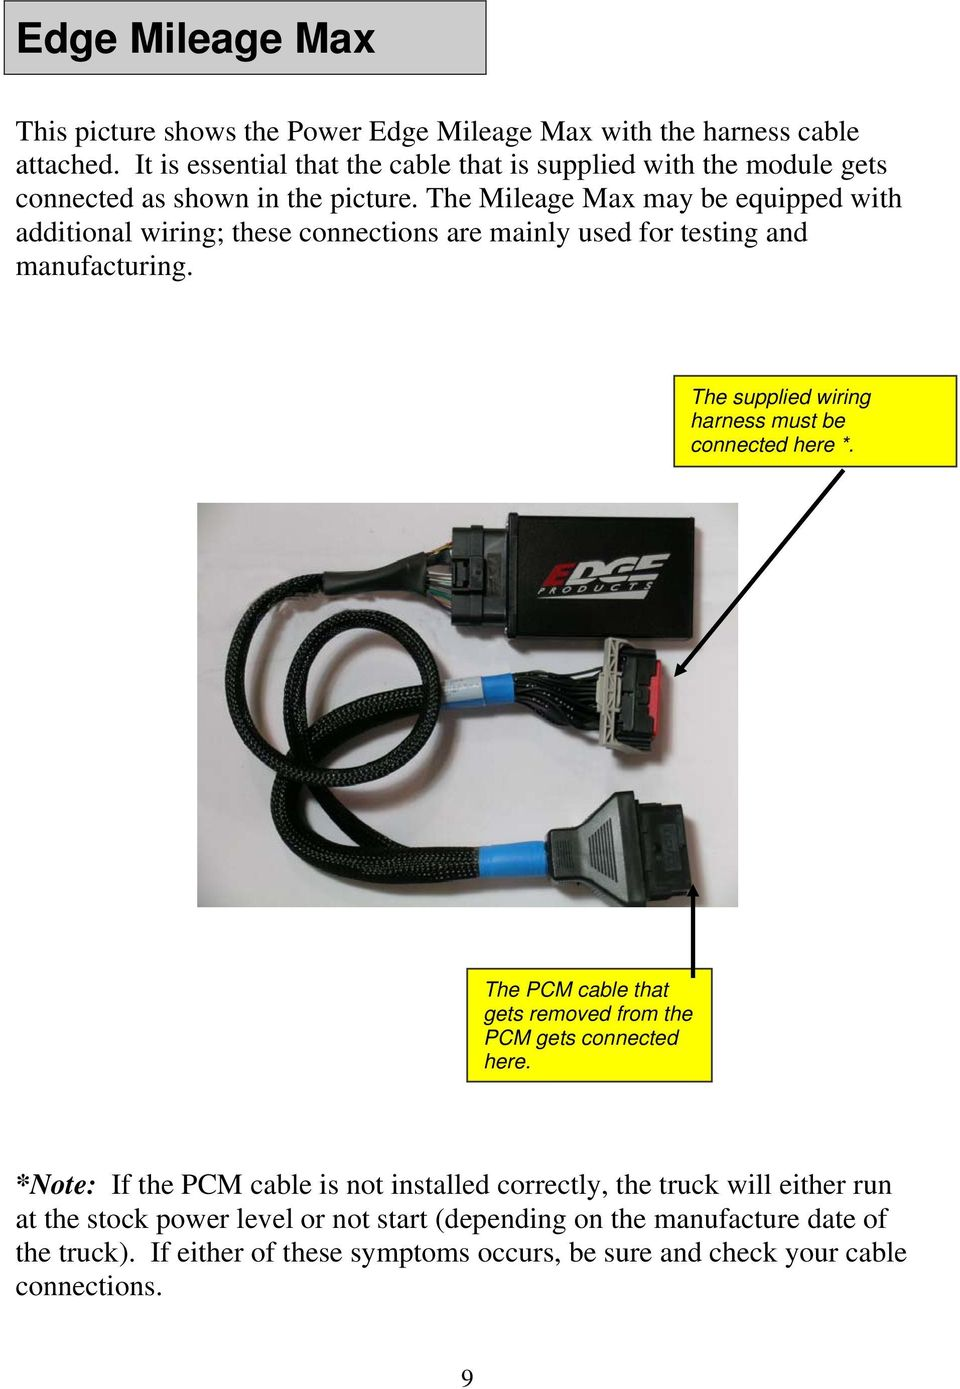 The Mileage Max may be equipped with additional wiring; these connections are mainly used for testing and manufacturing.